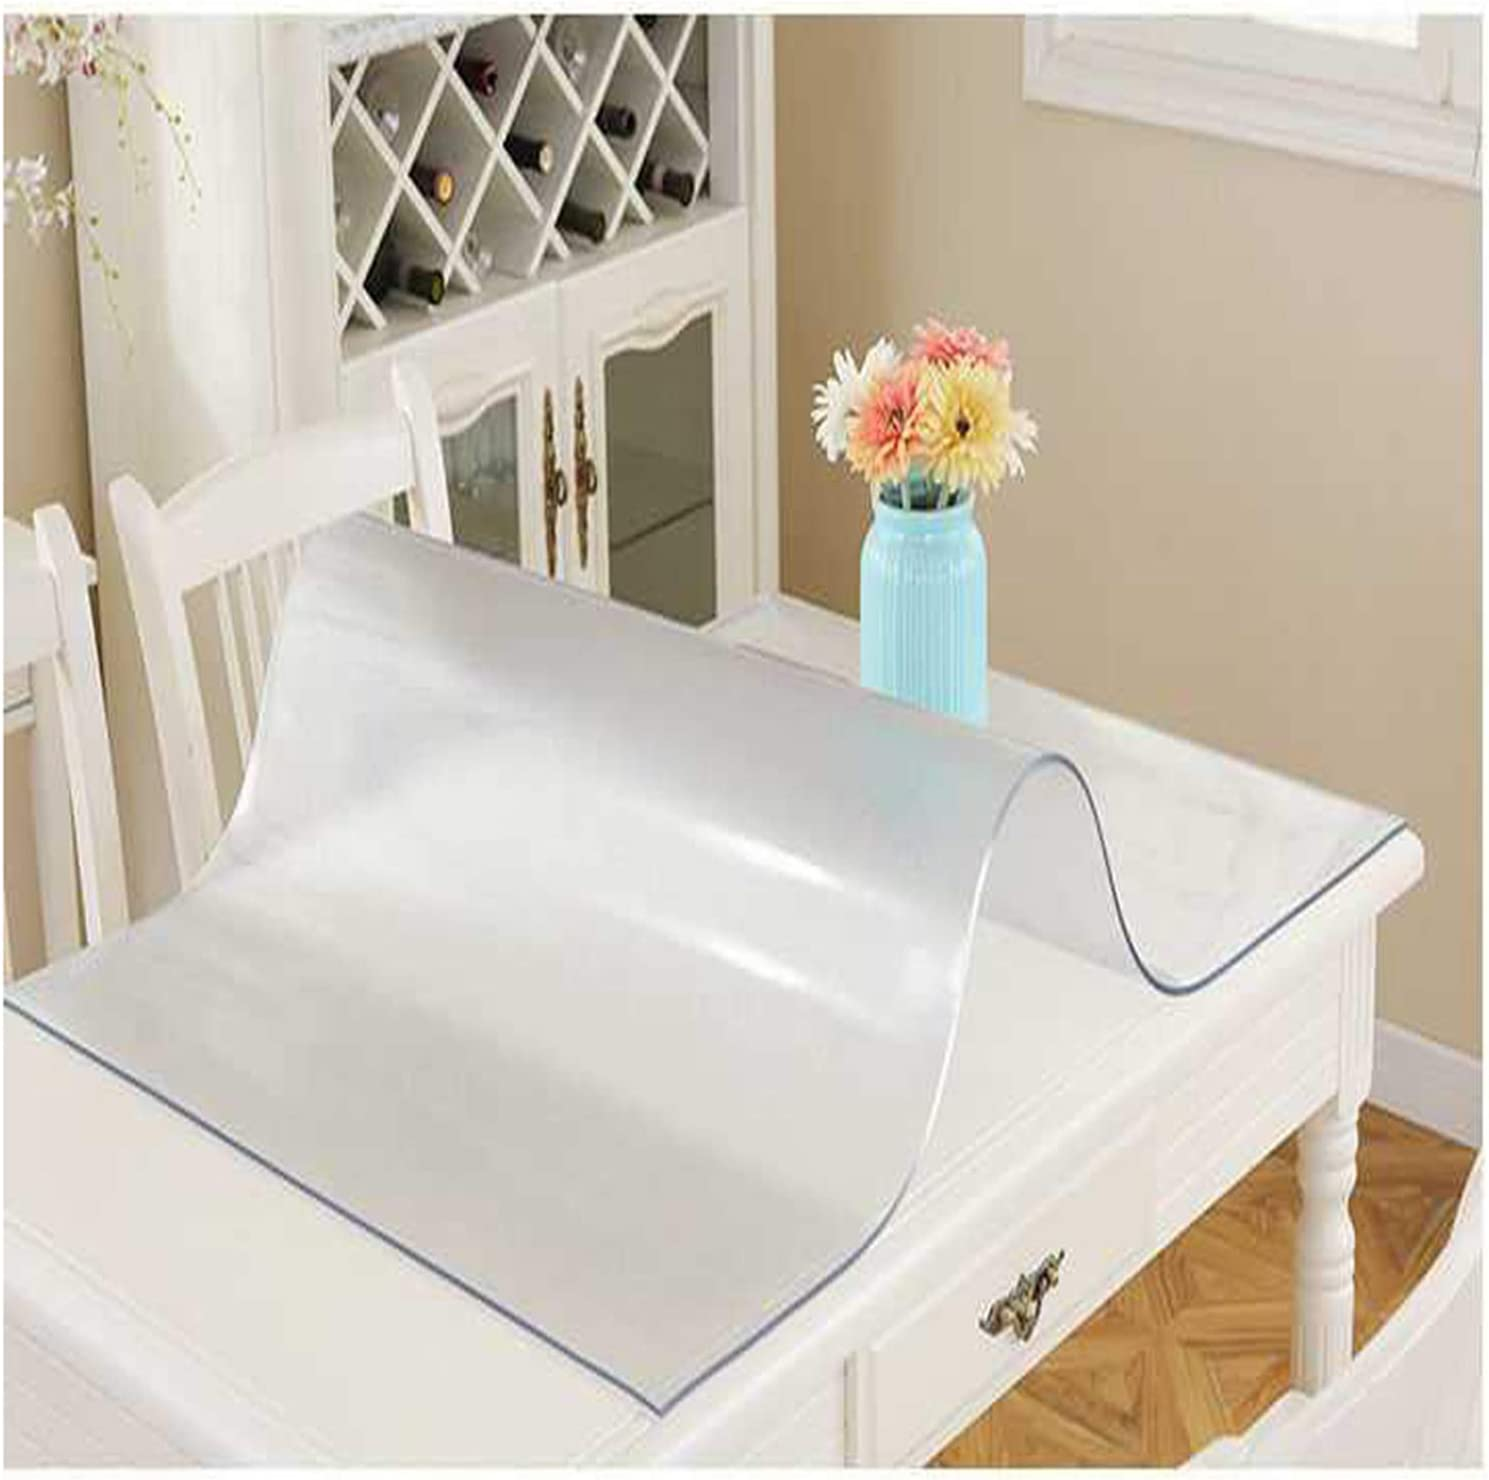 ASDQWER Transparent Tablecloth Clear Cover Desk Protector Max 79% Selling and selling OFF Coffe